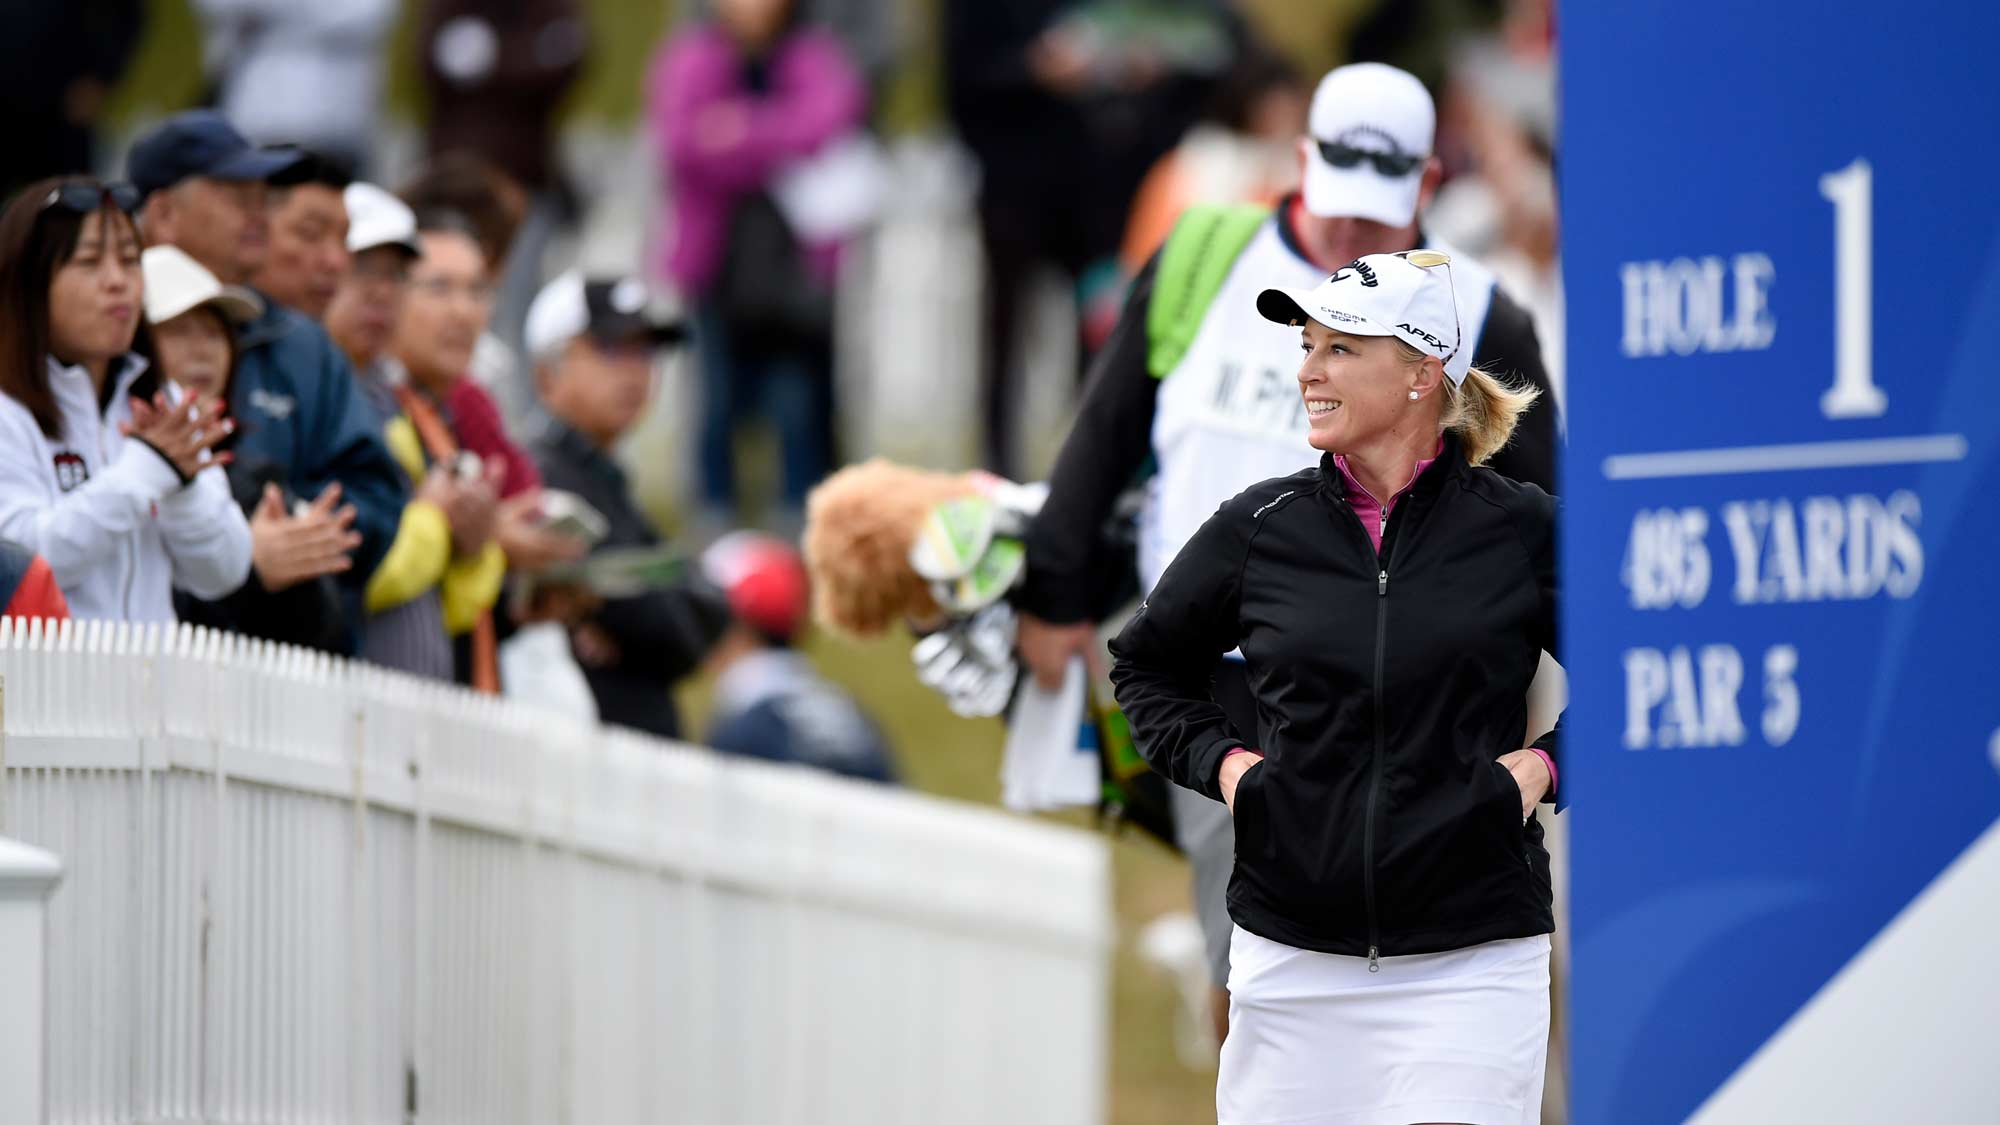 Morgan Pressel walks to the first tee